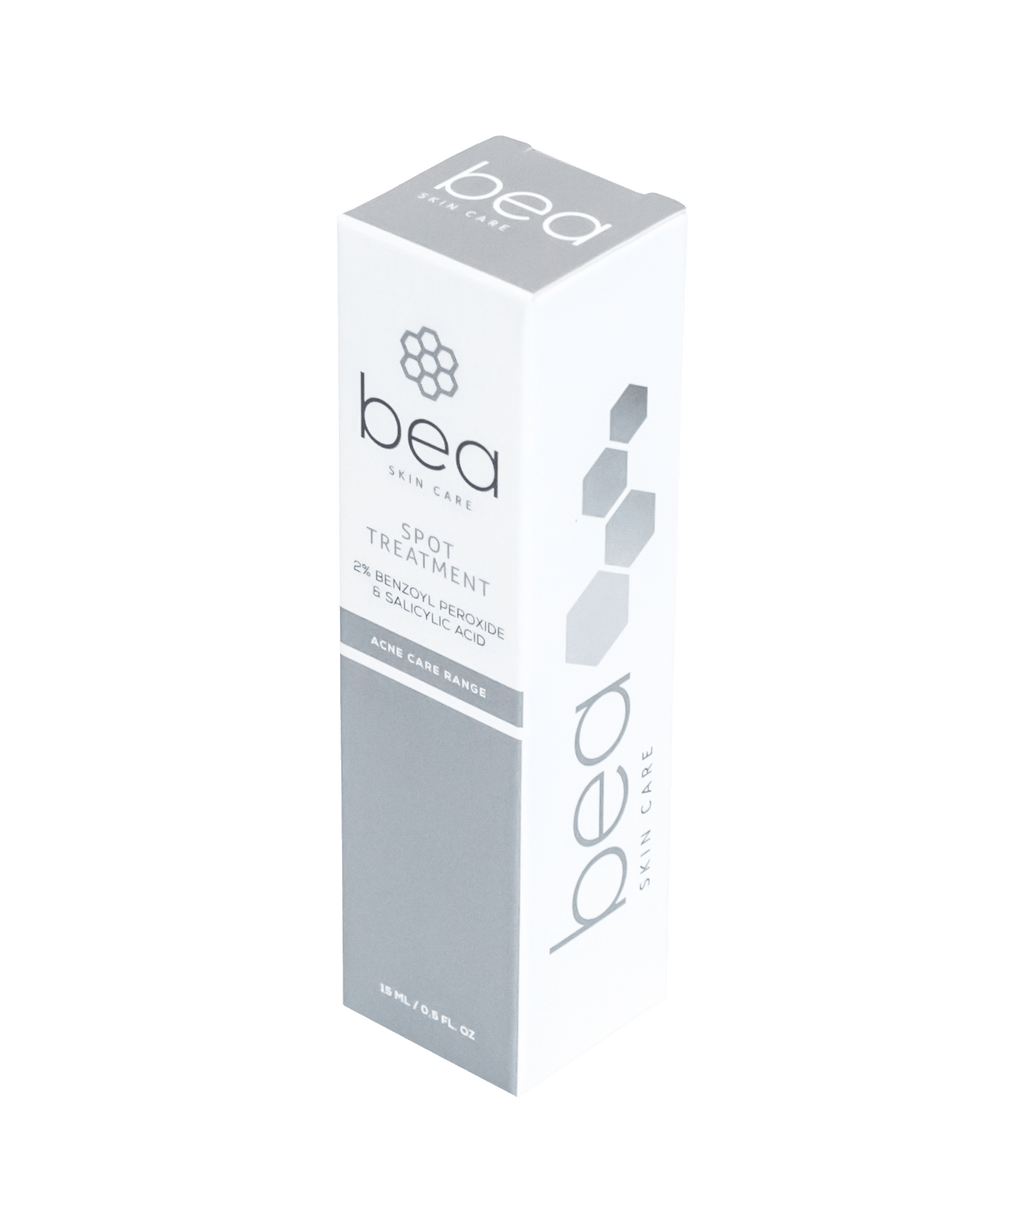 Spot Treatment - 15 ml Acne Gel bea Skin Care